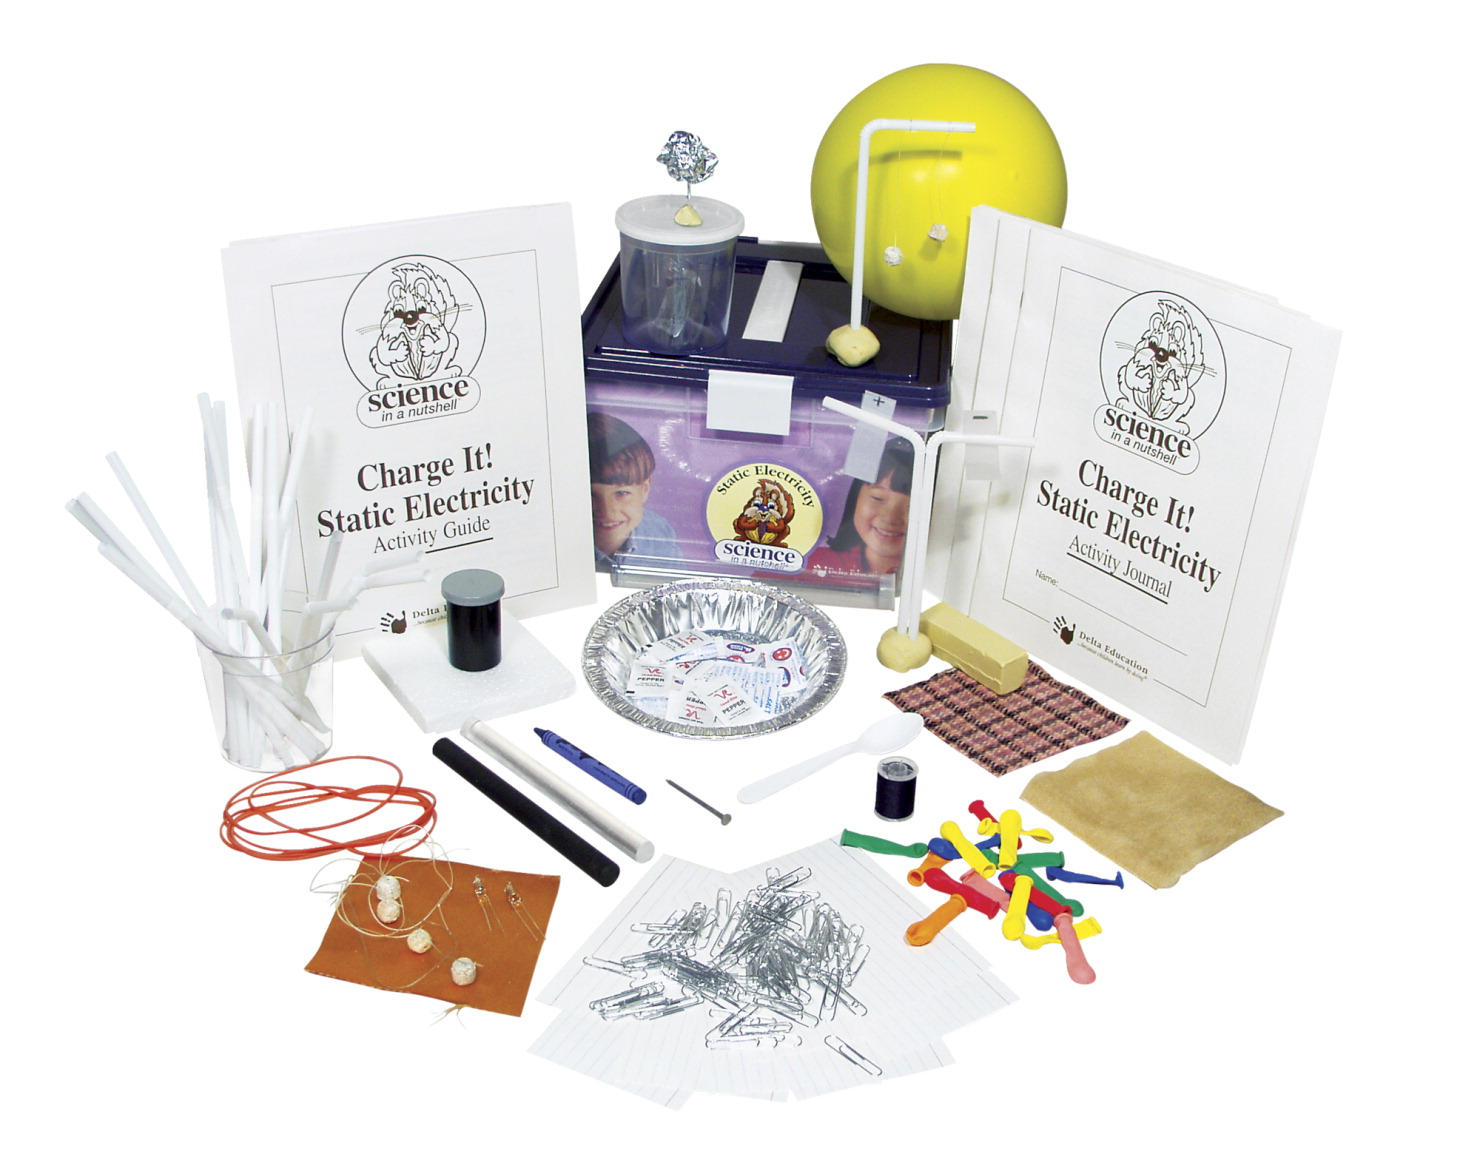 Science in a Nutshell Charge it! Static Electricity Kit